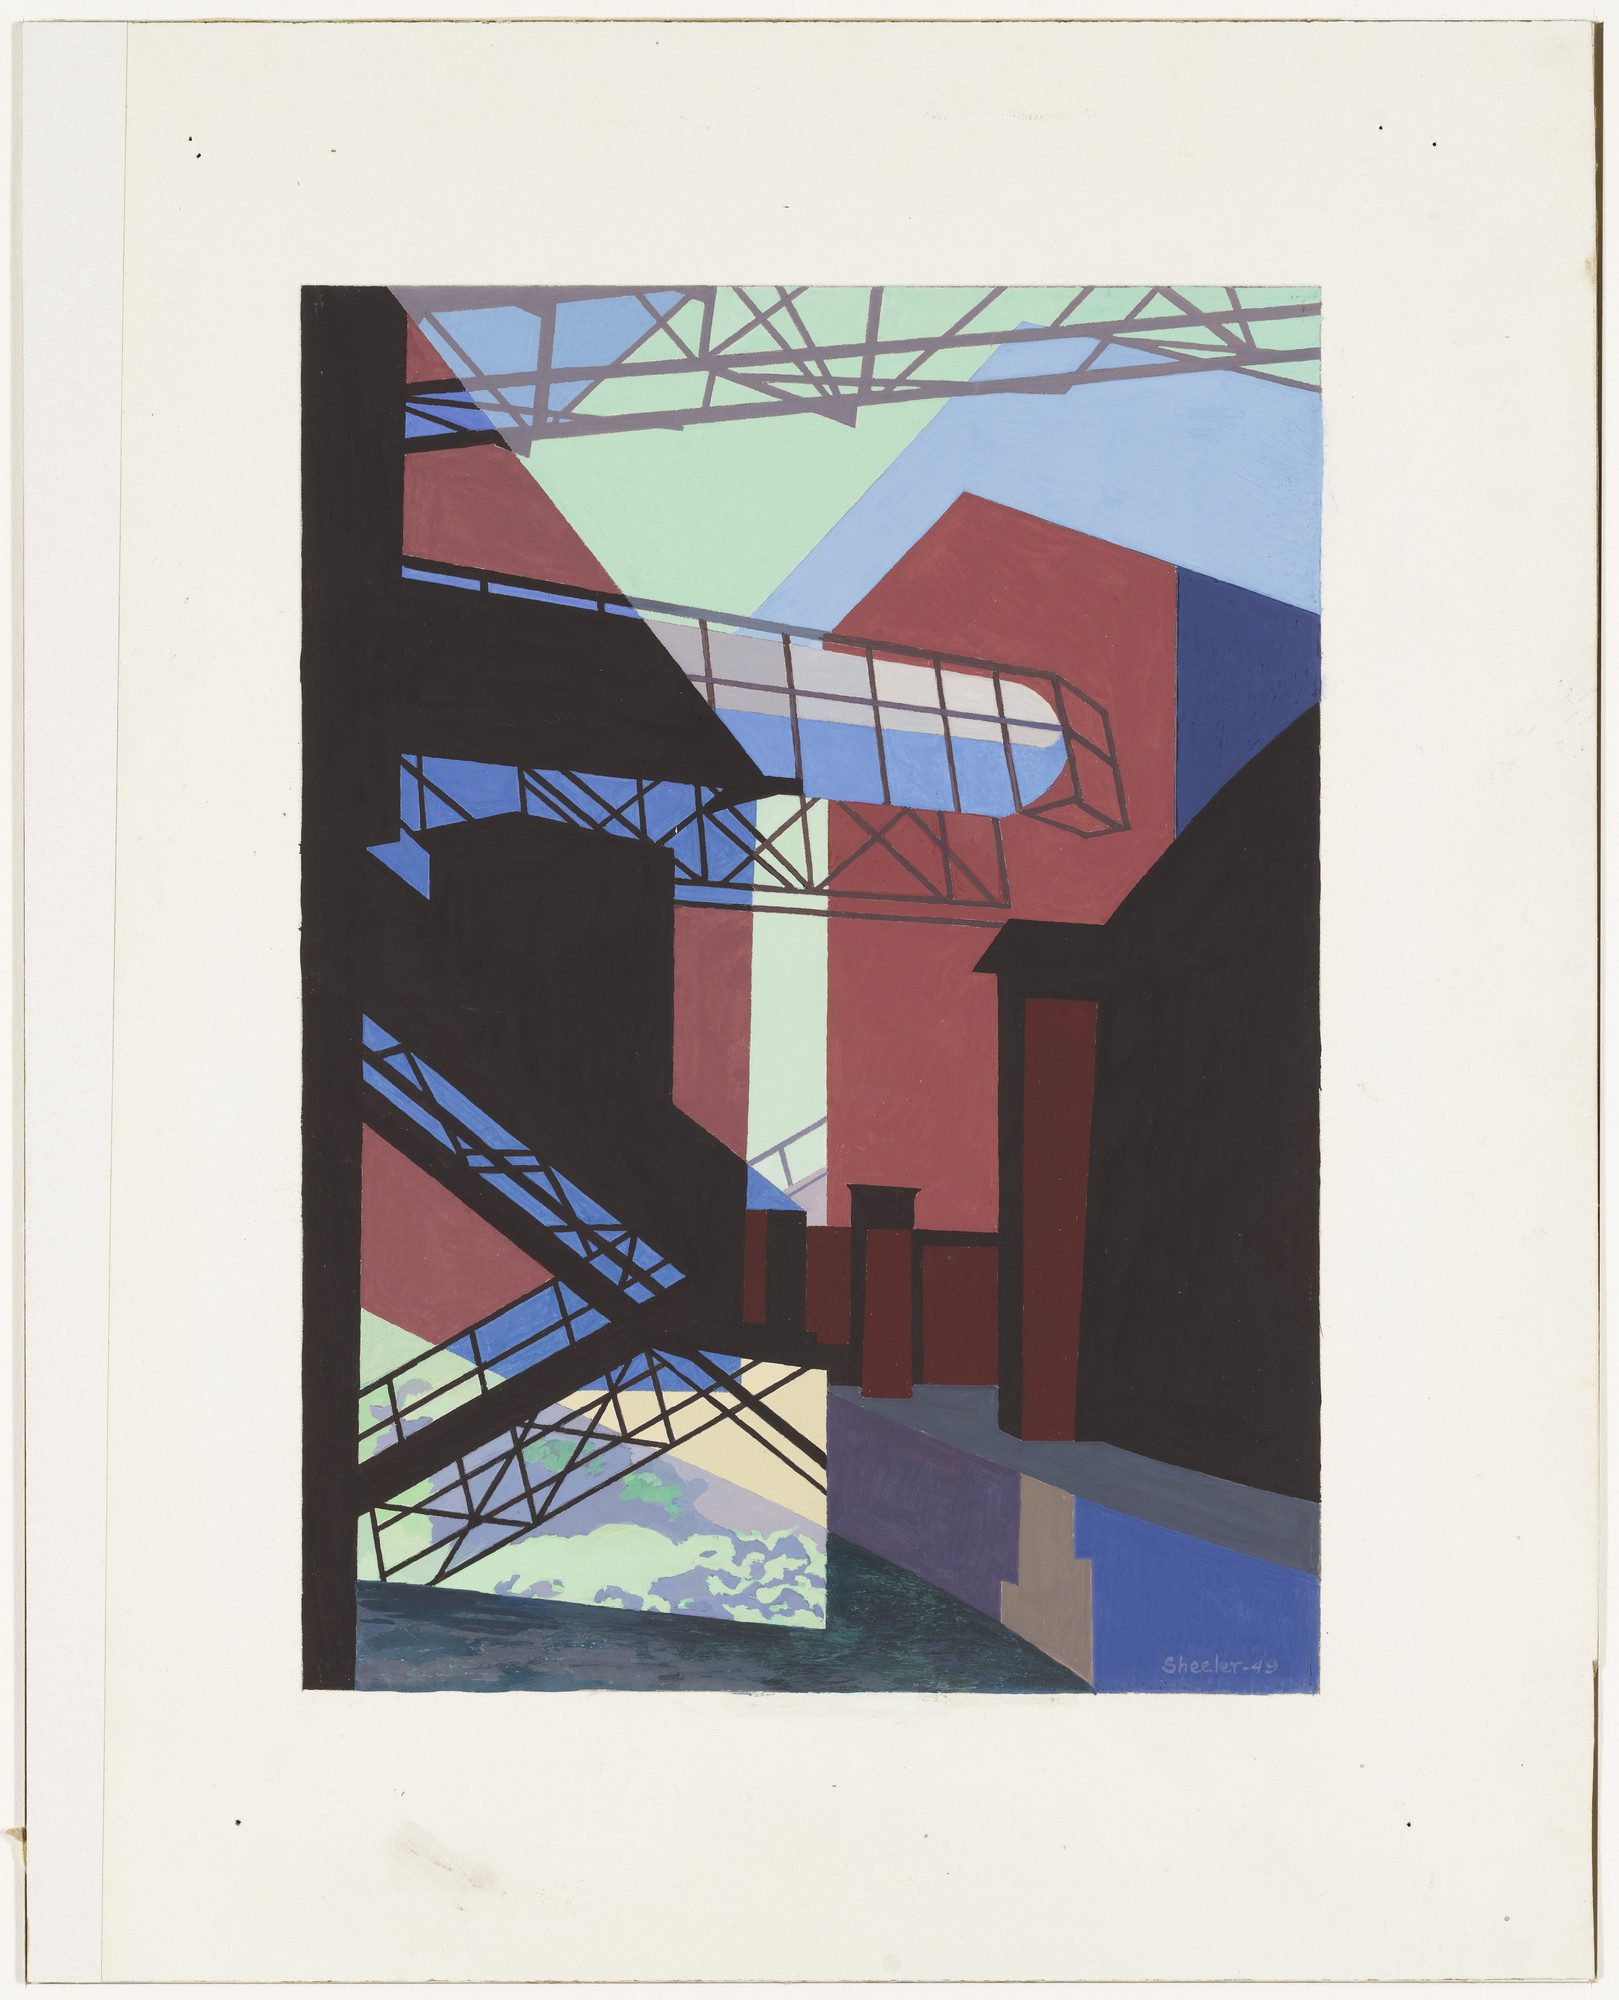 Charles Sheeler. Industrial Architecture. 1949